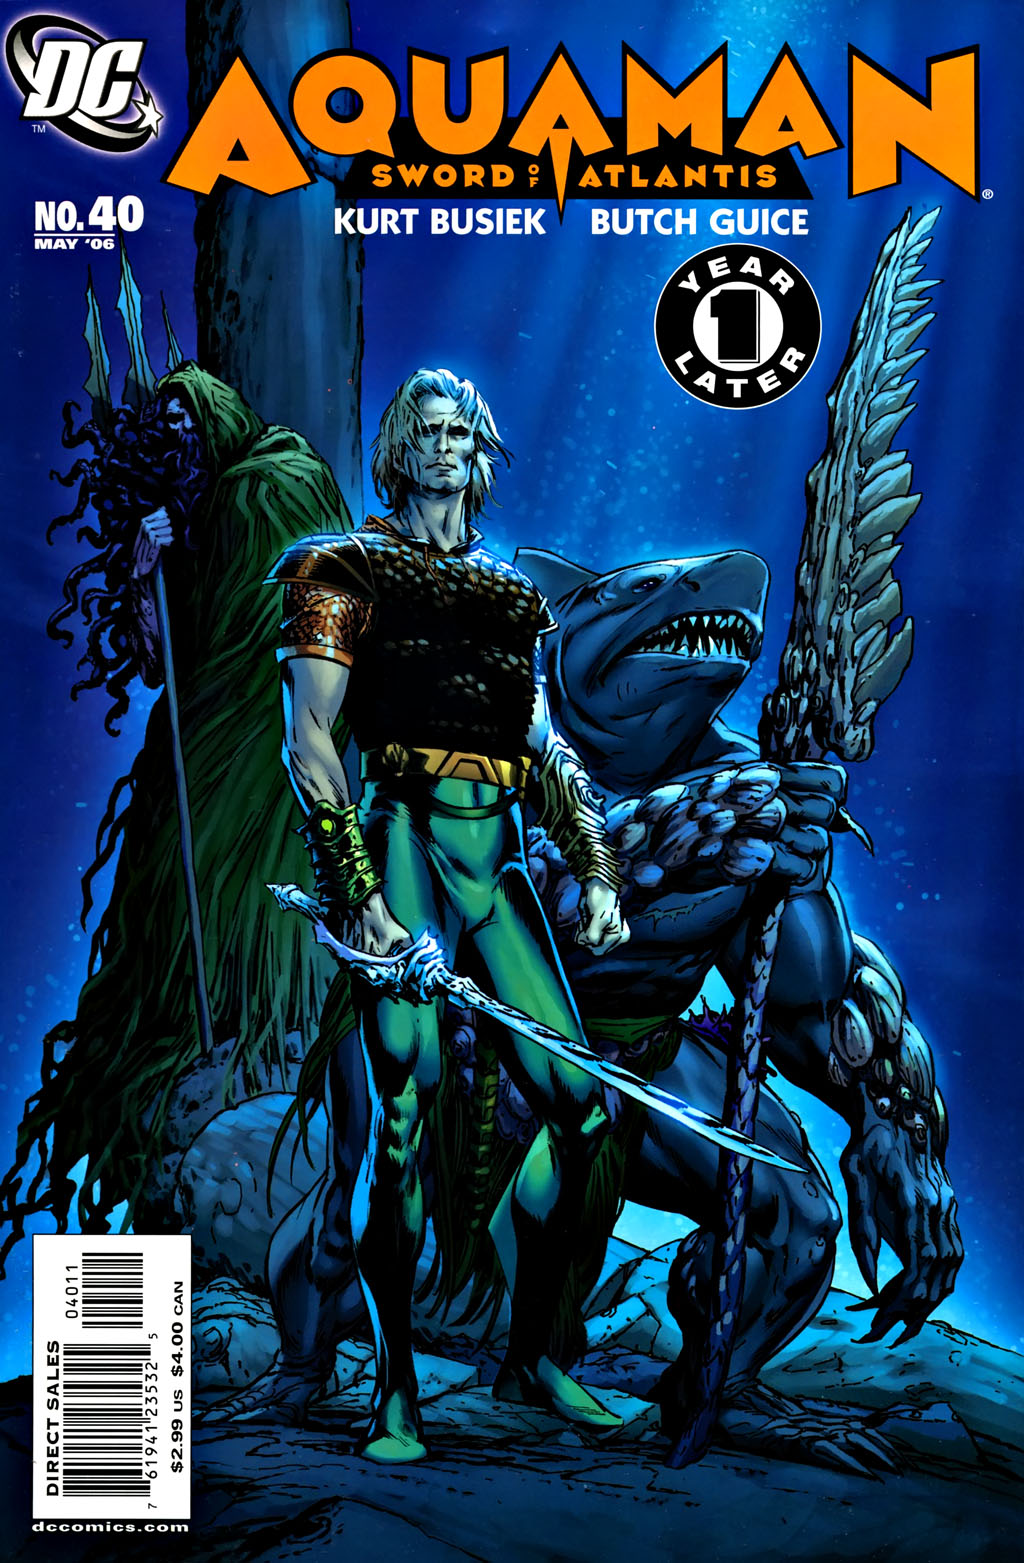 Aquaman: Sword of Atlantis 40 Page 1